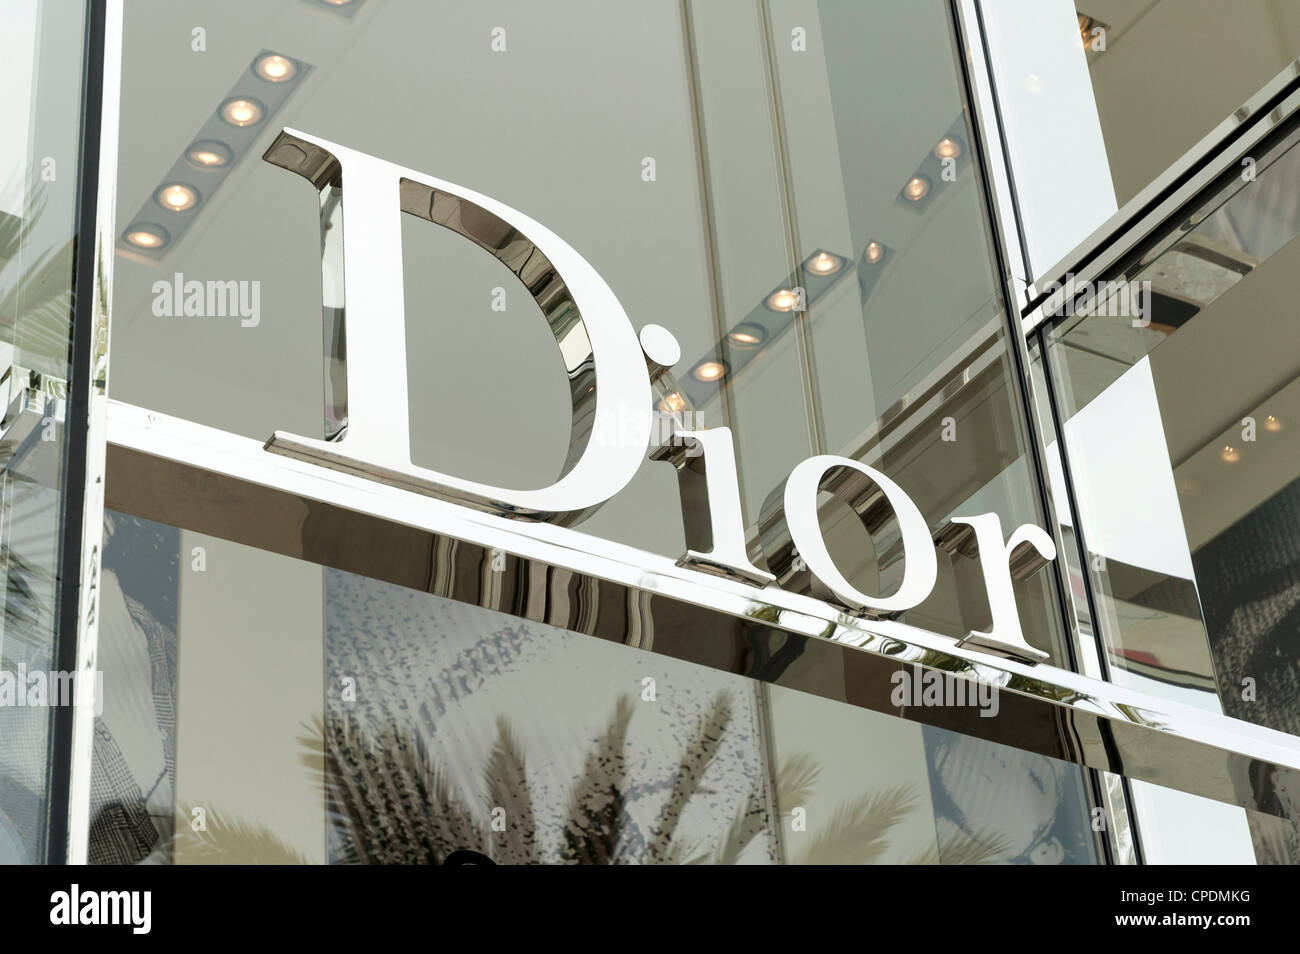 Dior sign - the luxury shopping brand - Stock Image